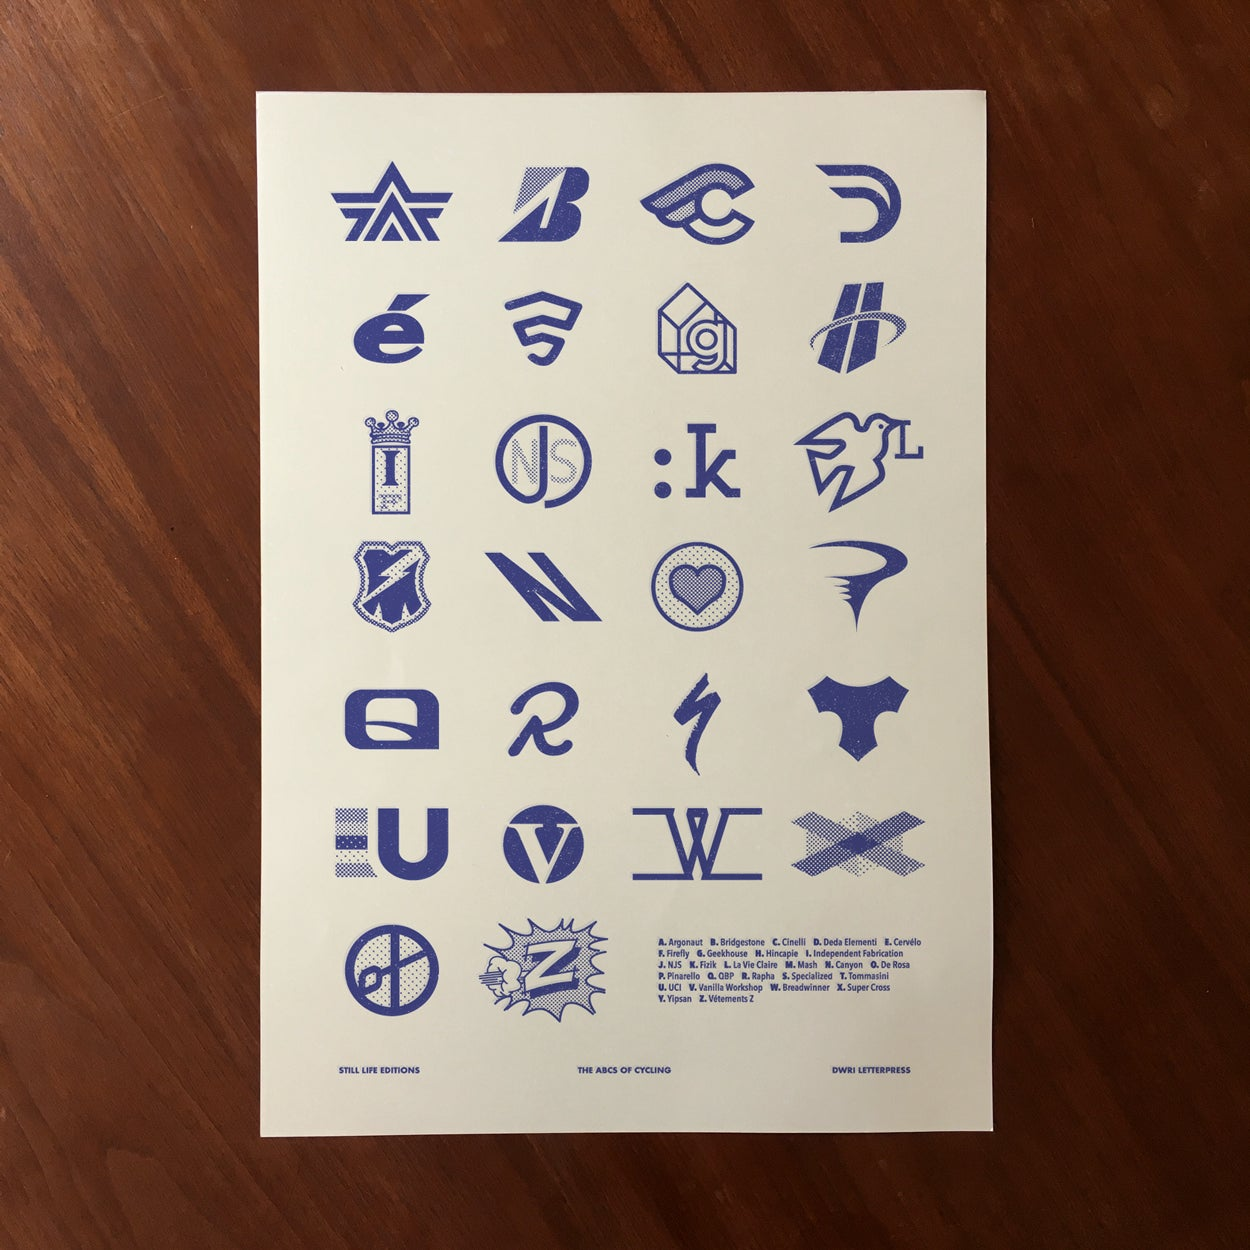 Image of The ABCs of Cycling print